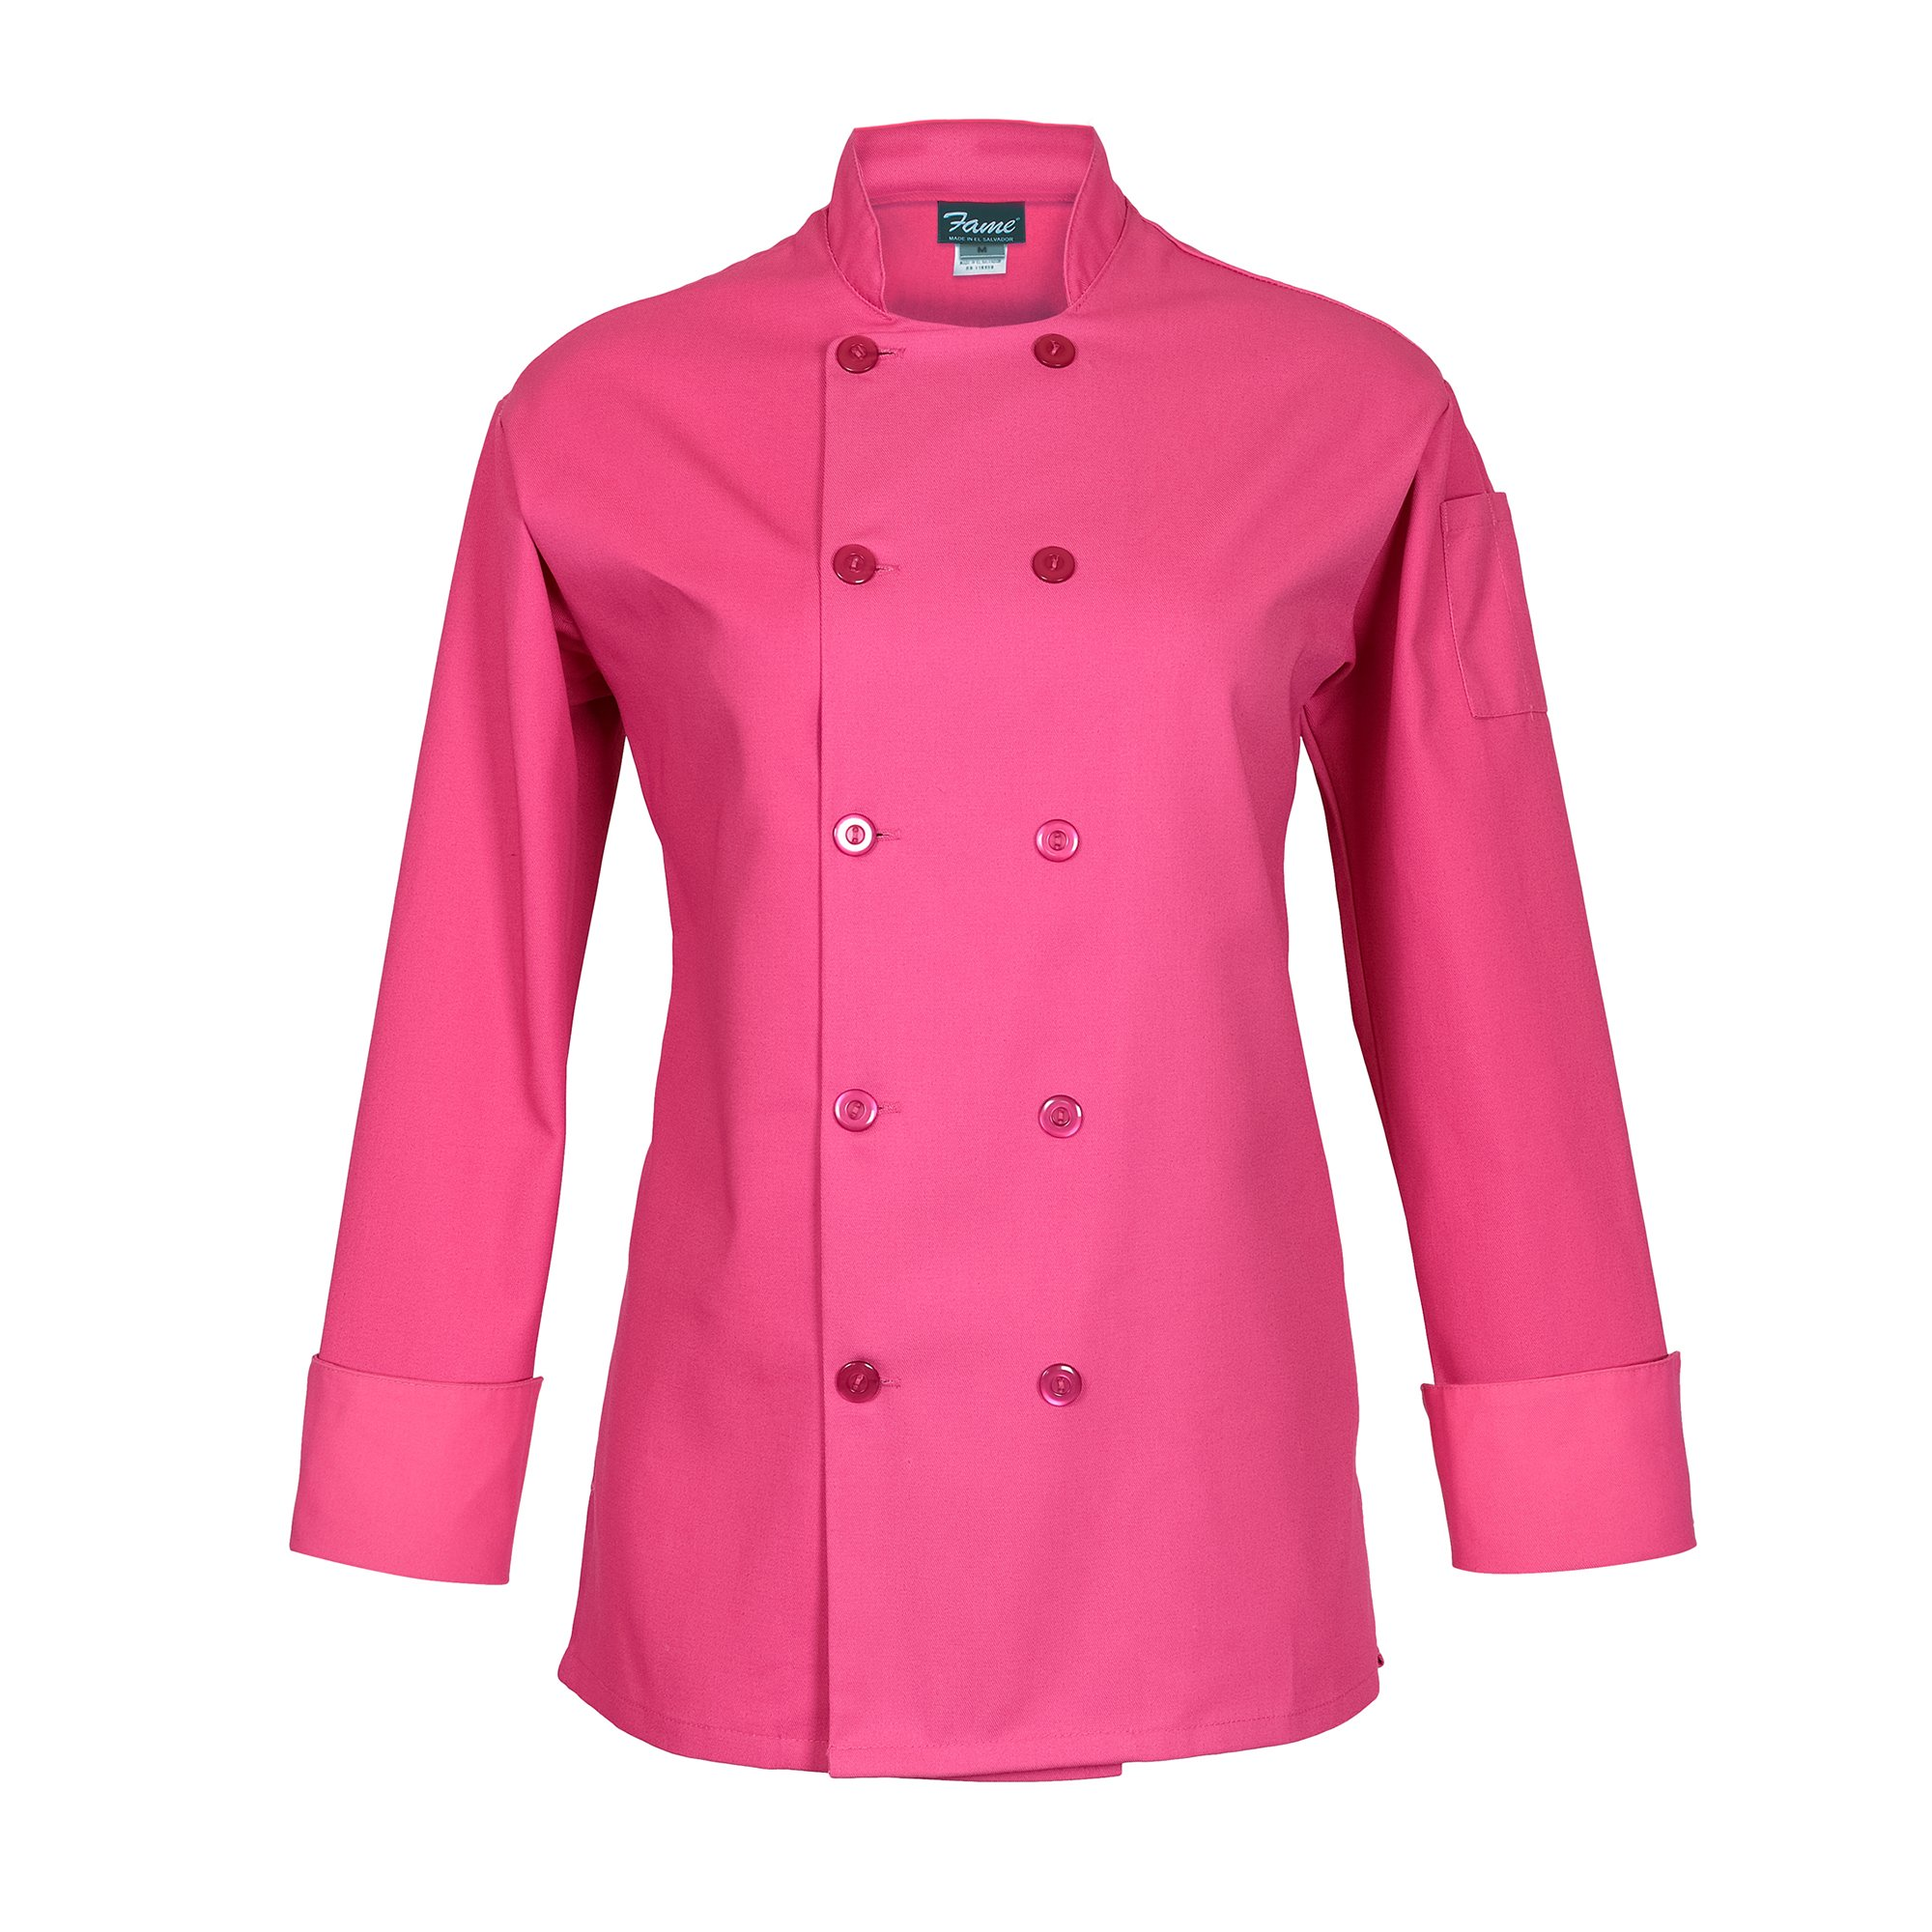 Fame Women's Long Sleeve Chef Coat (small, Raspberry) by Fame